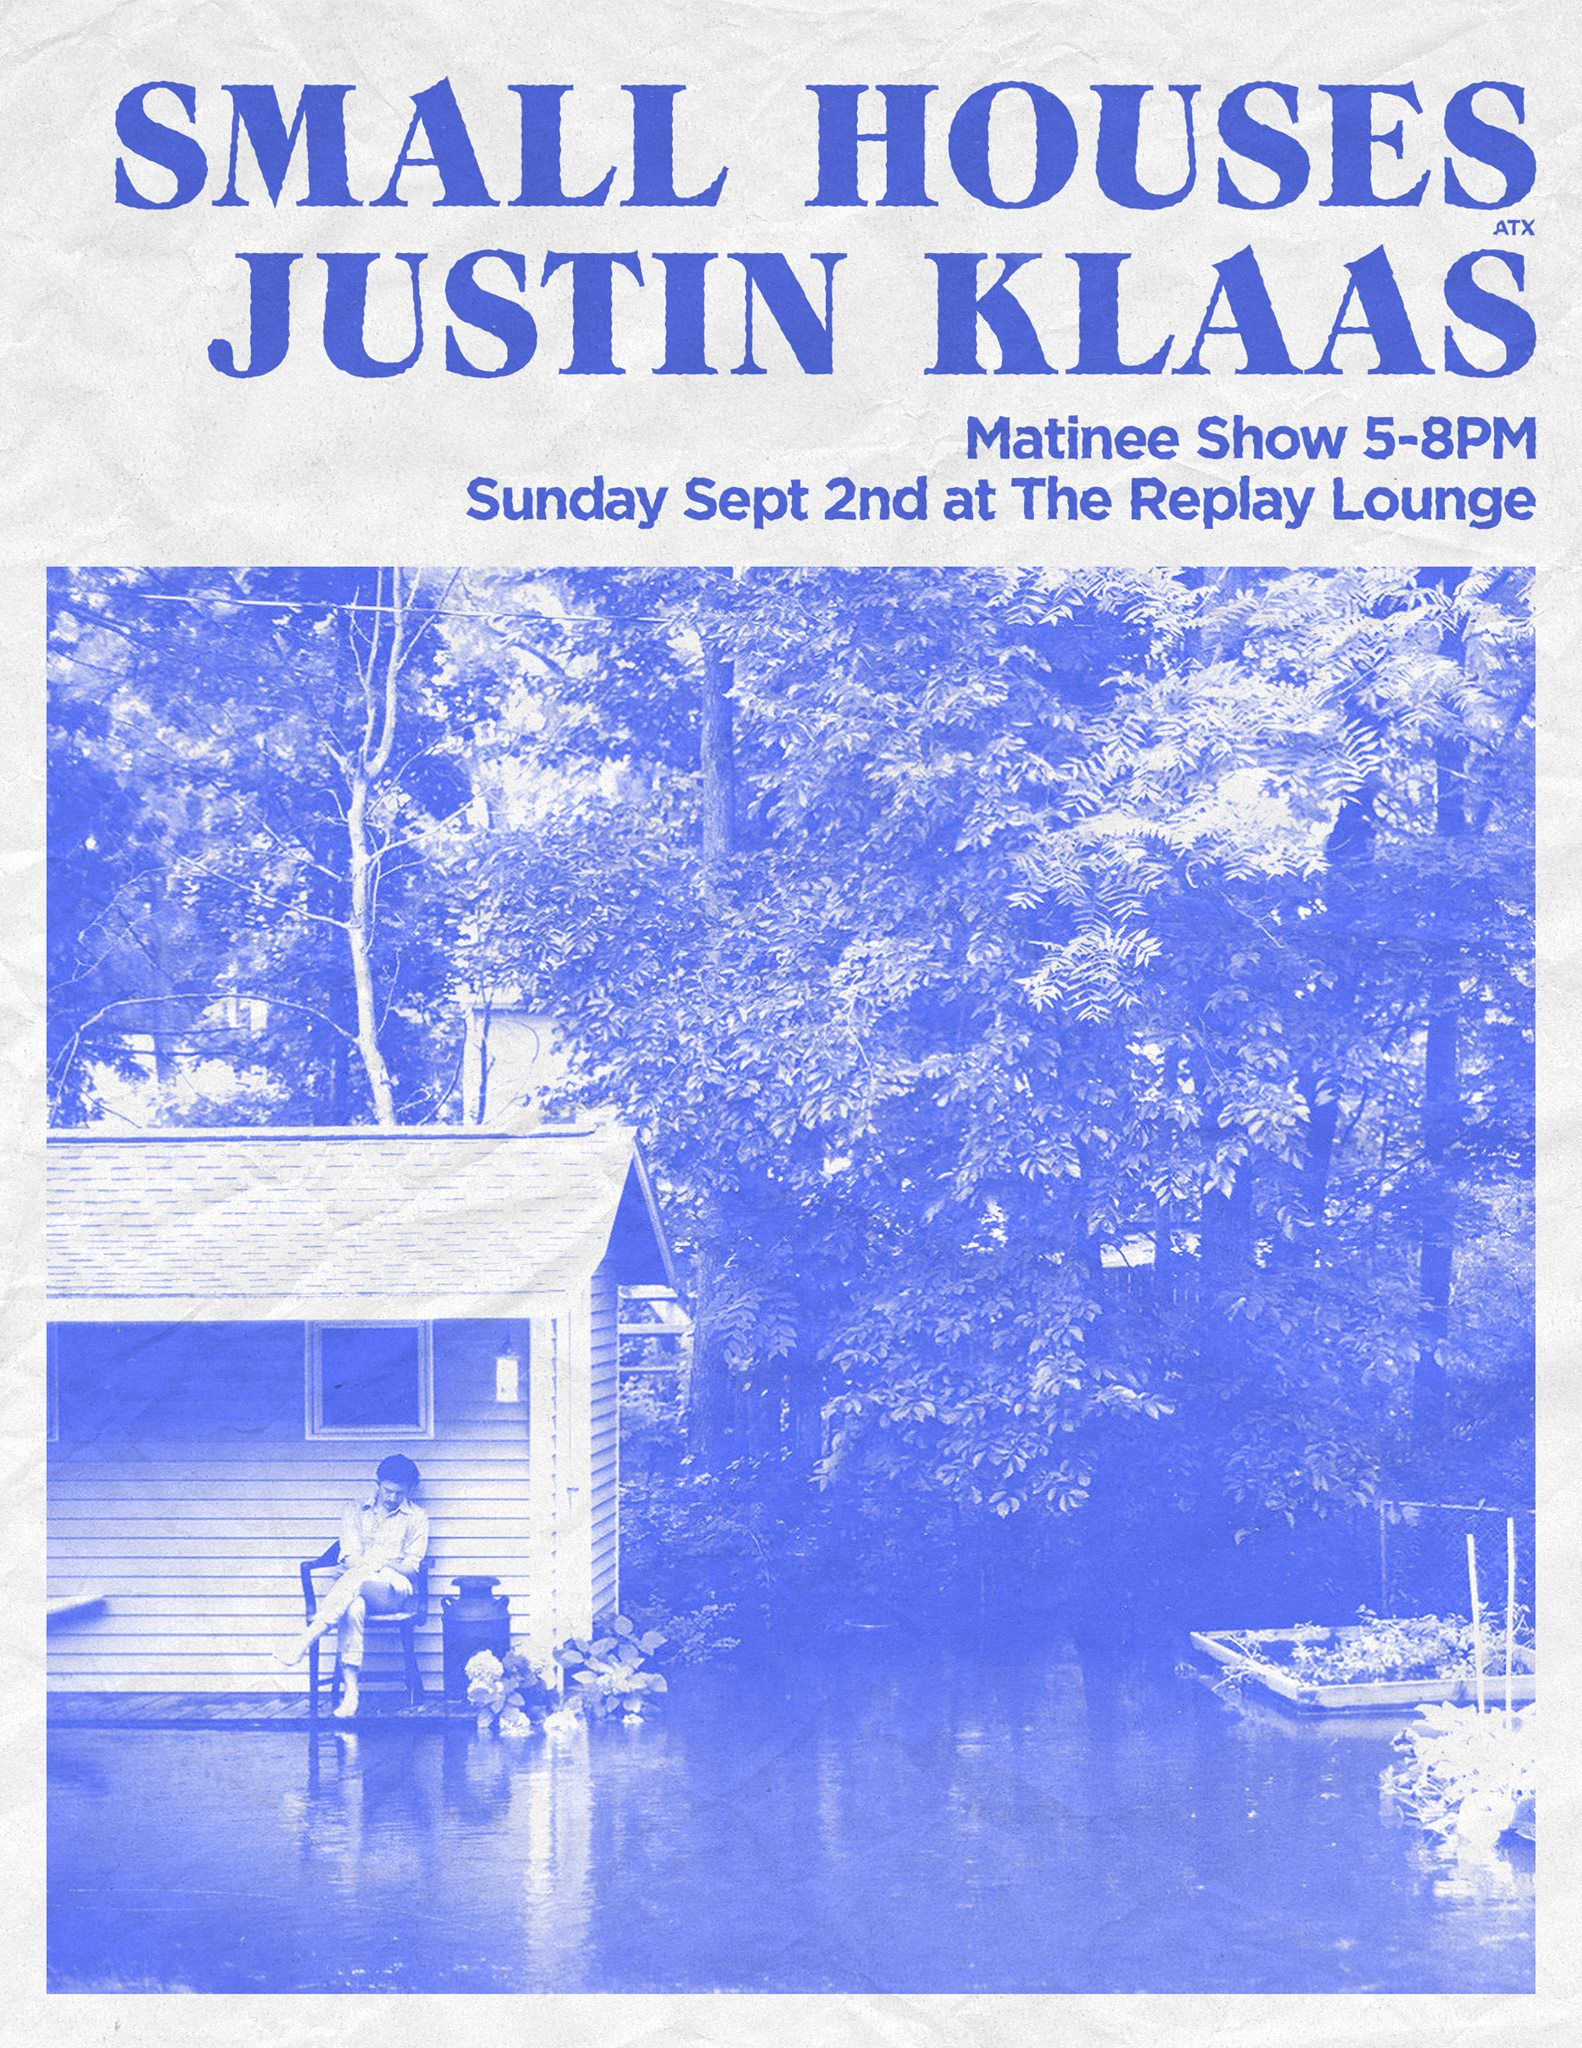 small houses atx justin klaas matinee show 5 8pm i heart